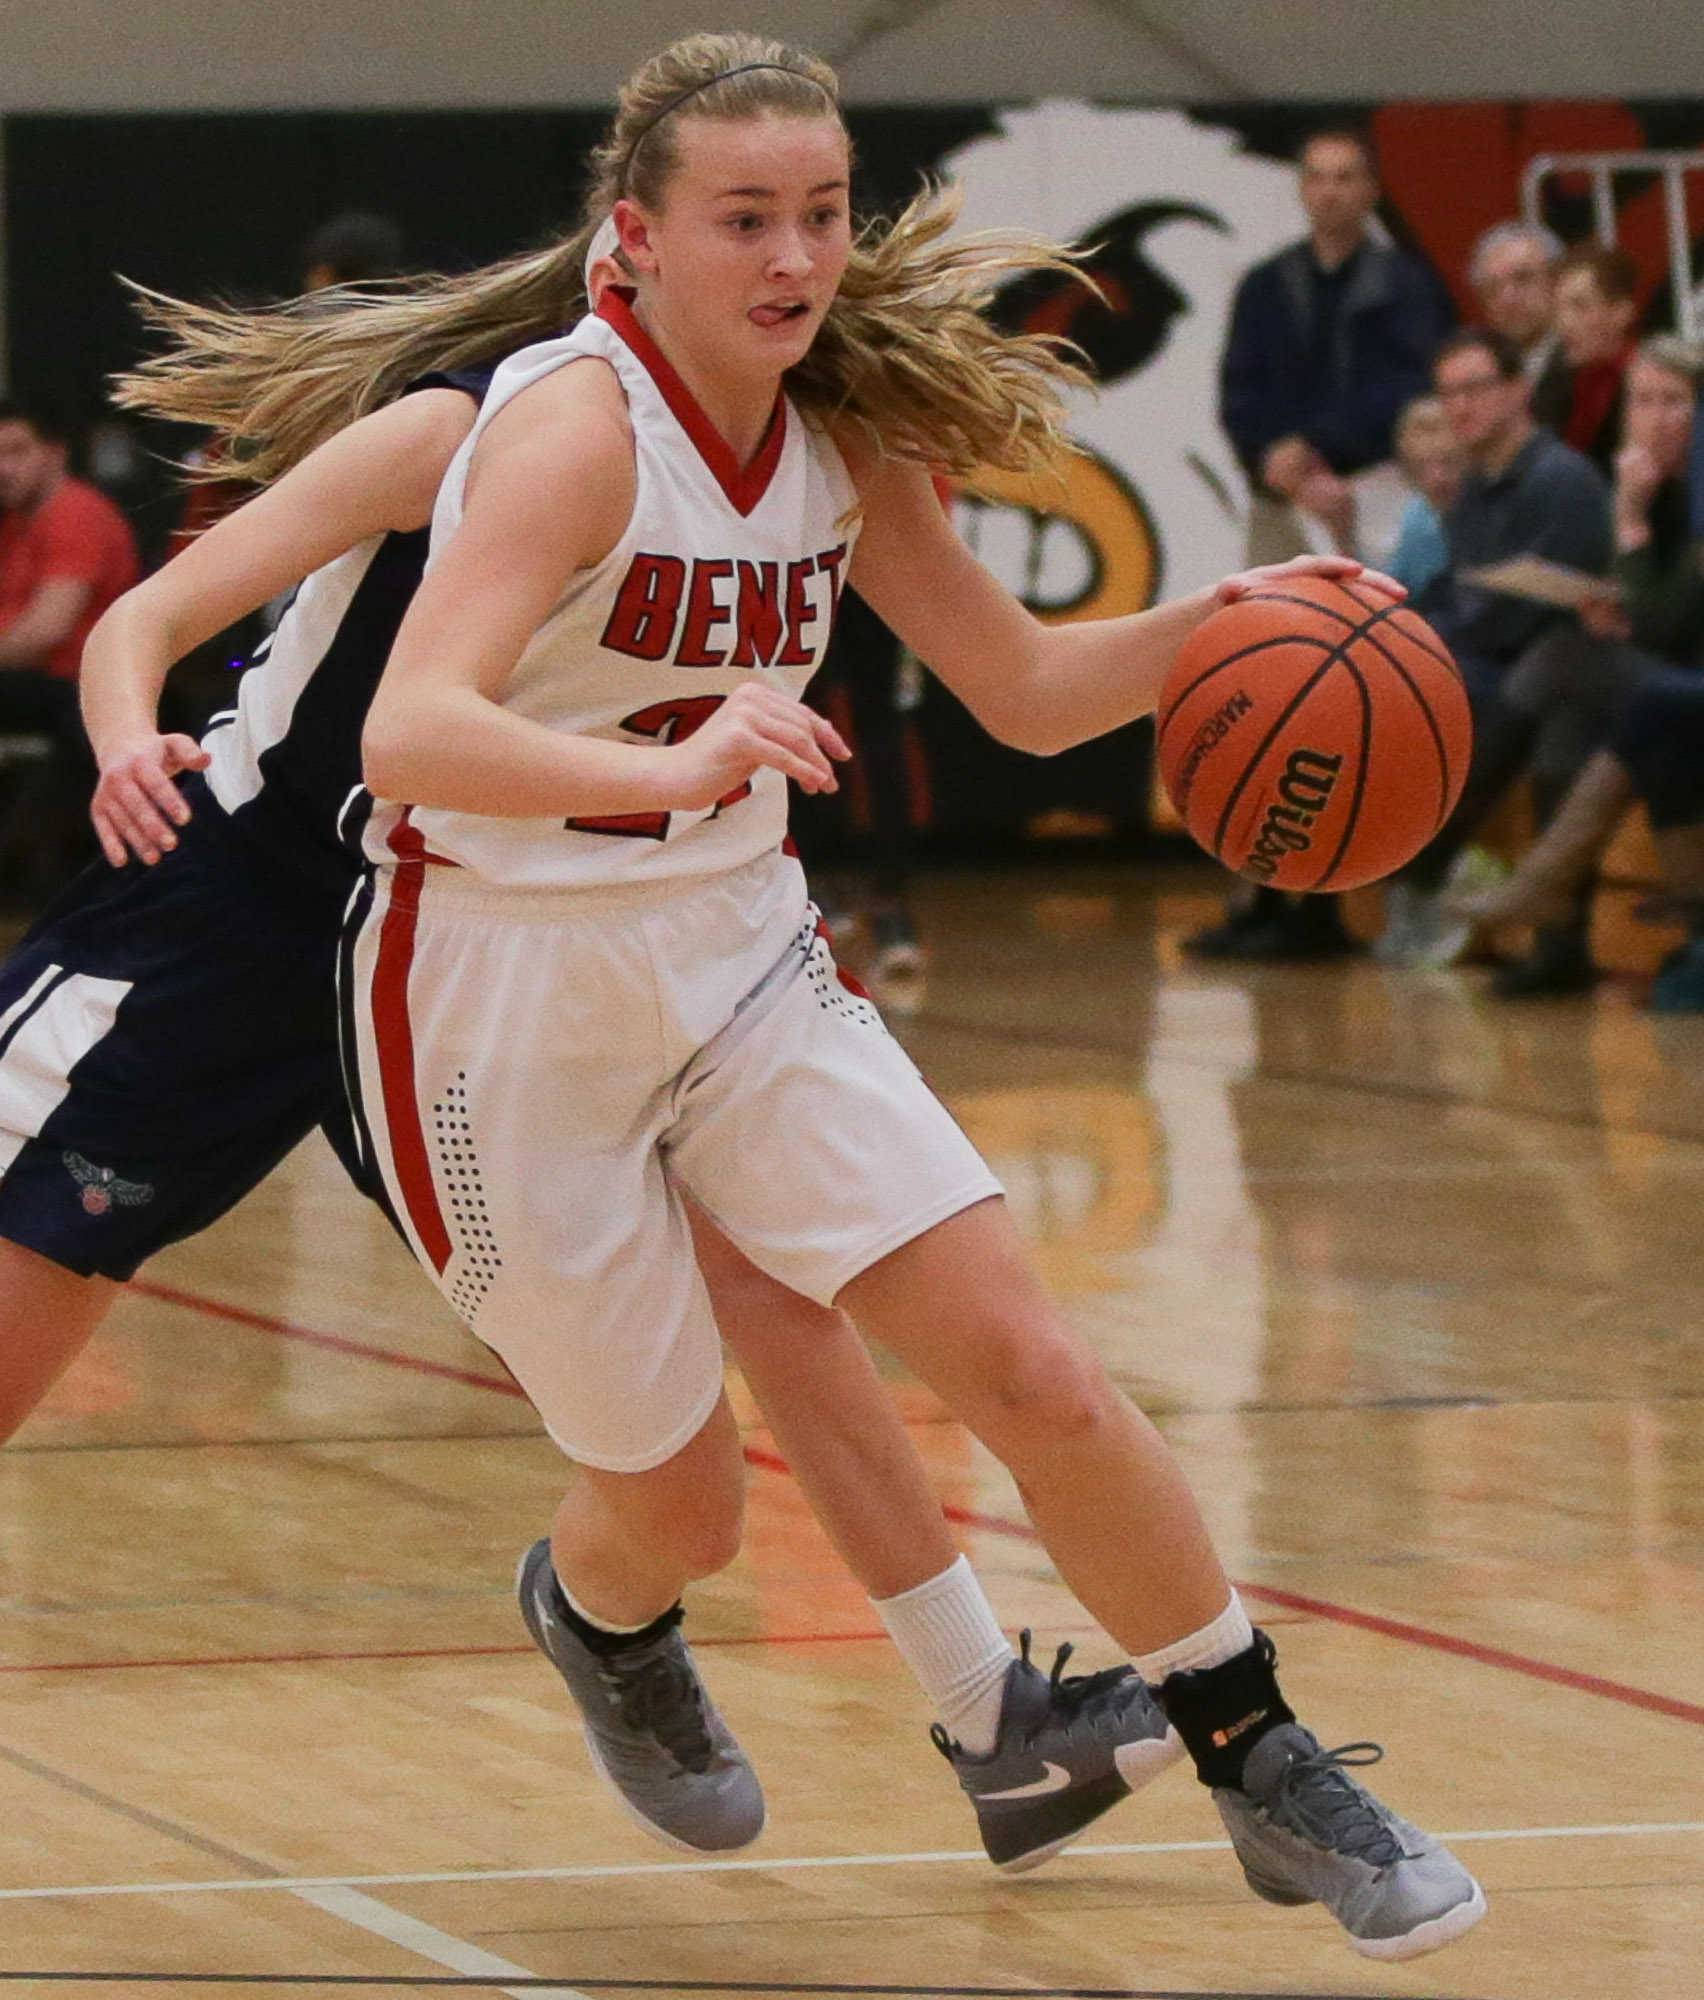 Benet guard Clara Prasse (21) brings the ball up the court past Bartlett guard Kayla Hare (4) at Benet Academy in Lisle, IL on Friday, November 18, 2016